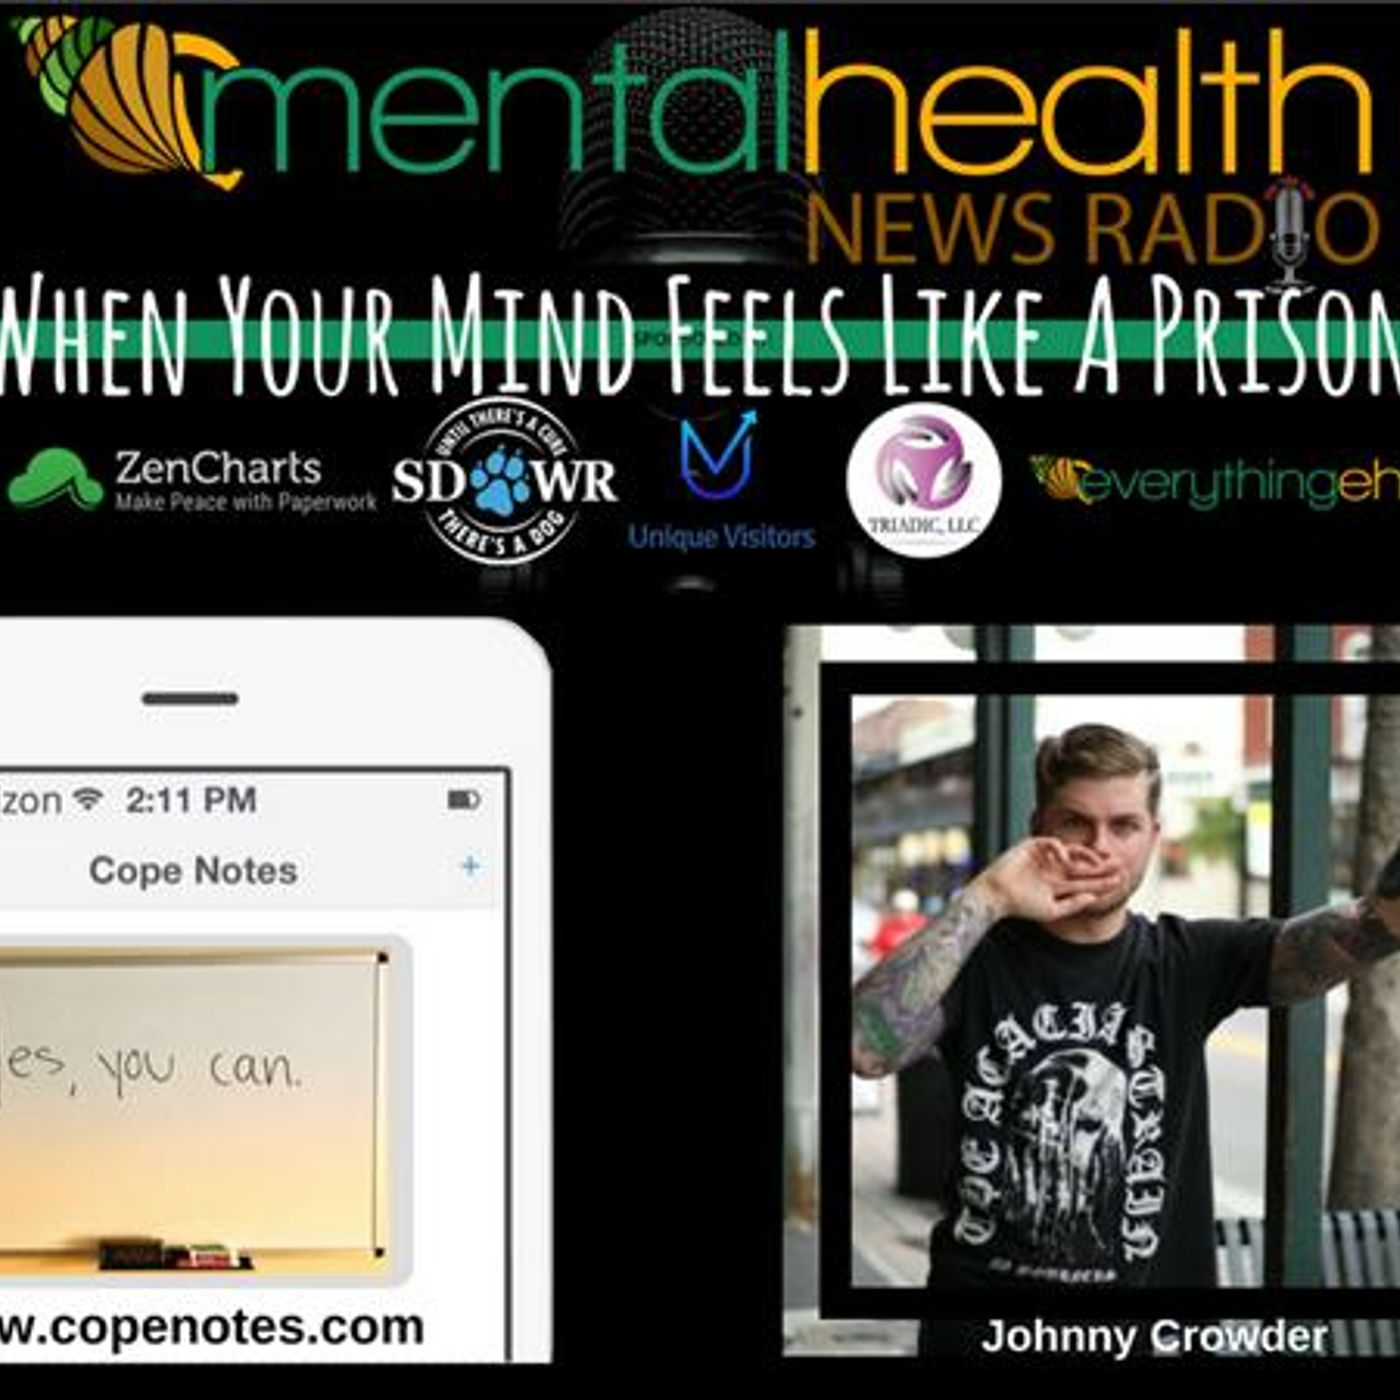 Mental Health News Radio - When Your Mind Feels Like A Prison with Johnny Crowder